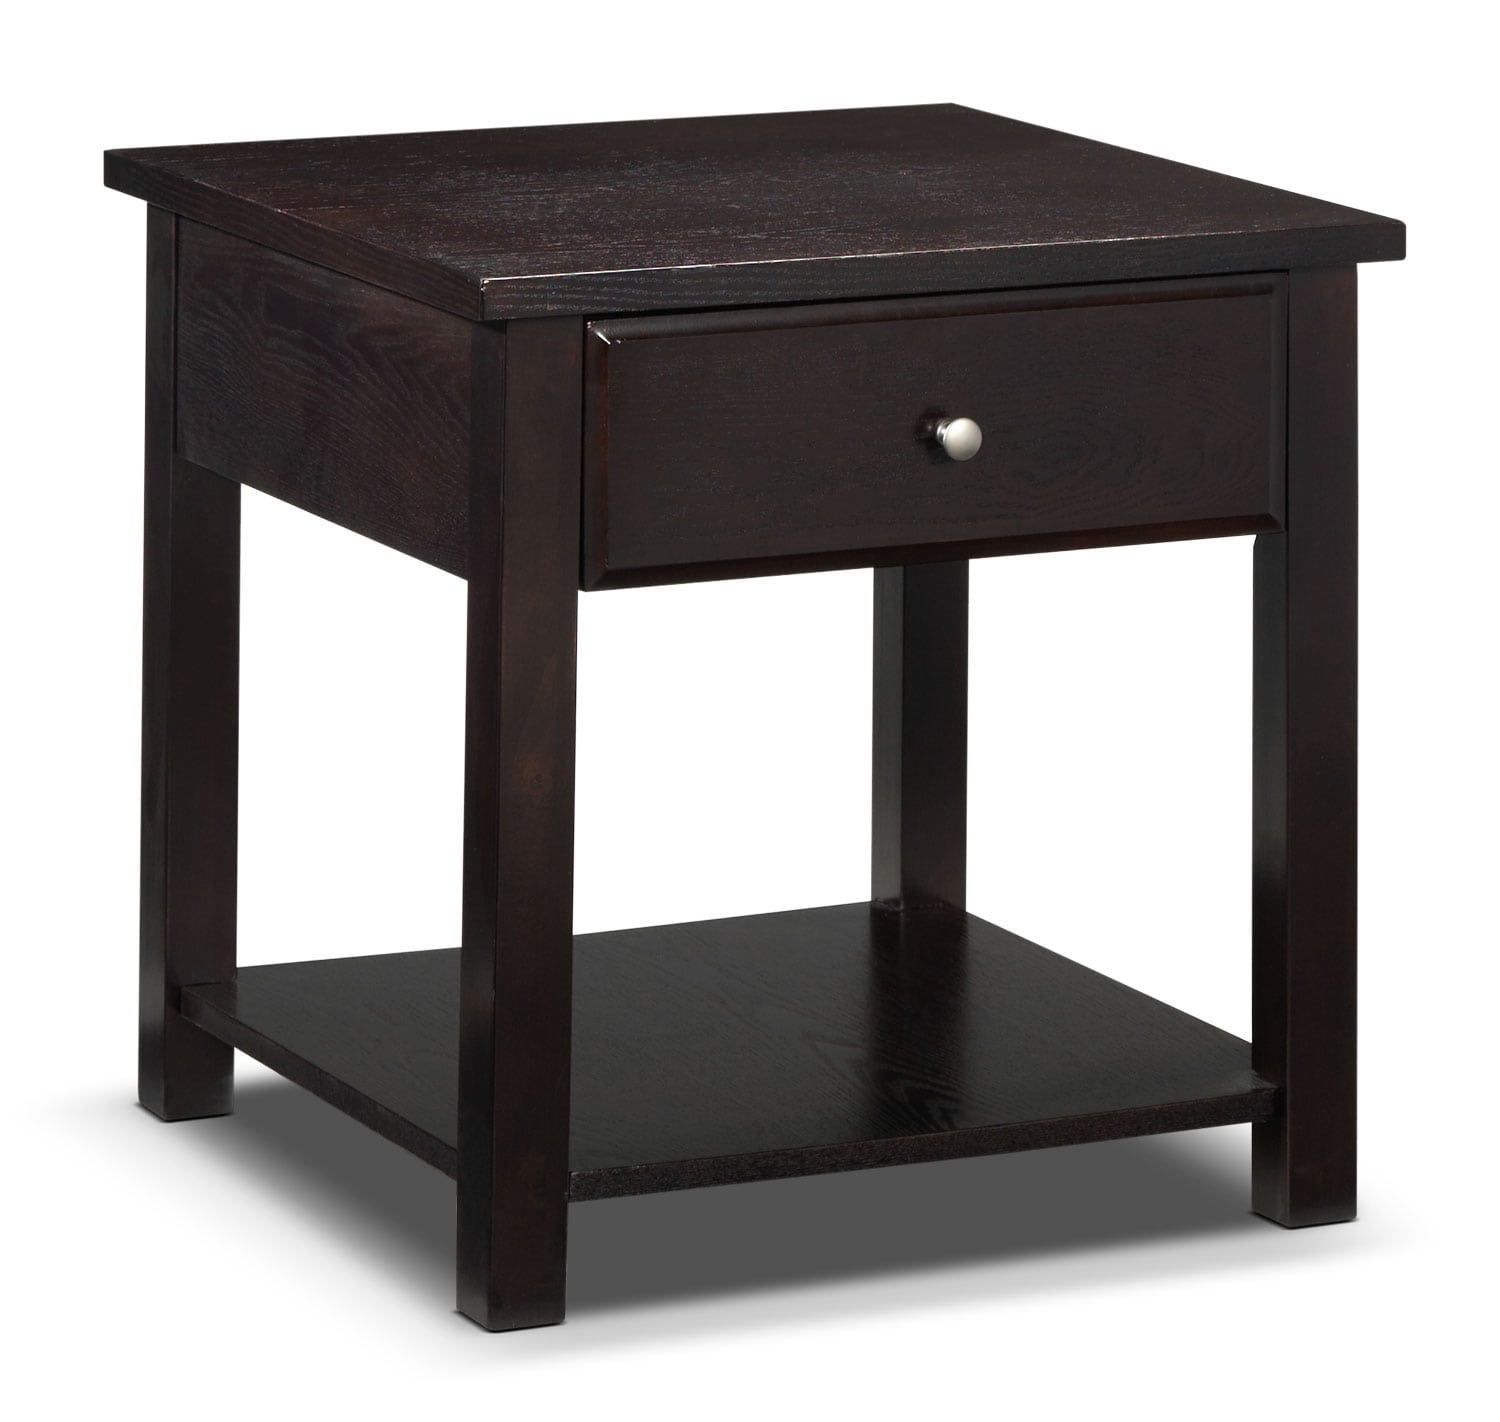 Ines End Table - Espresso